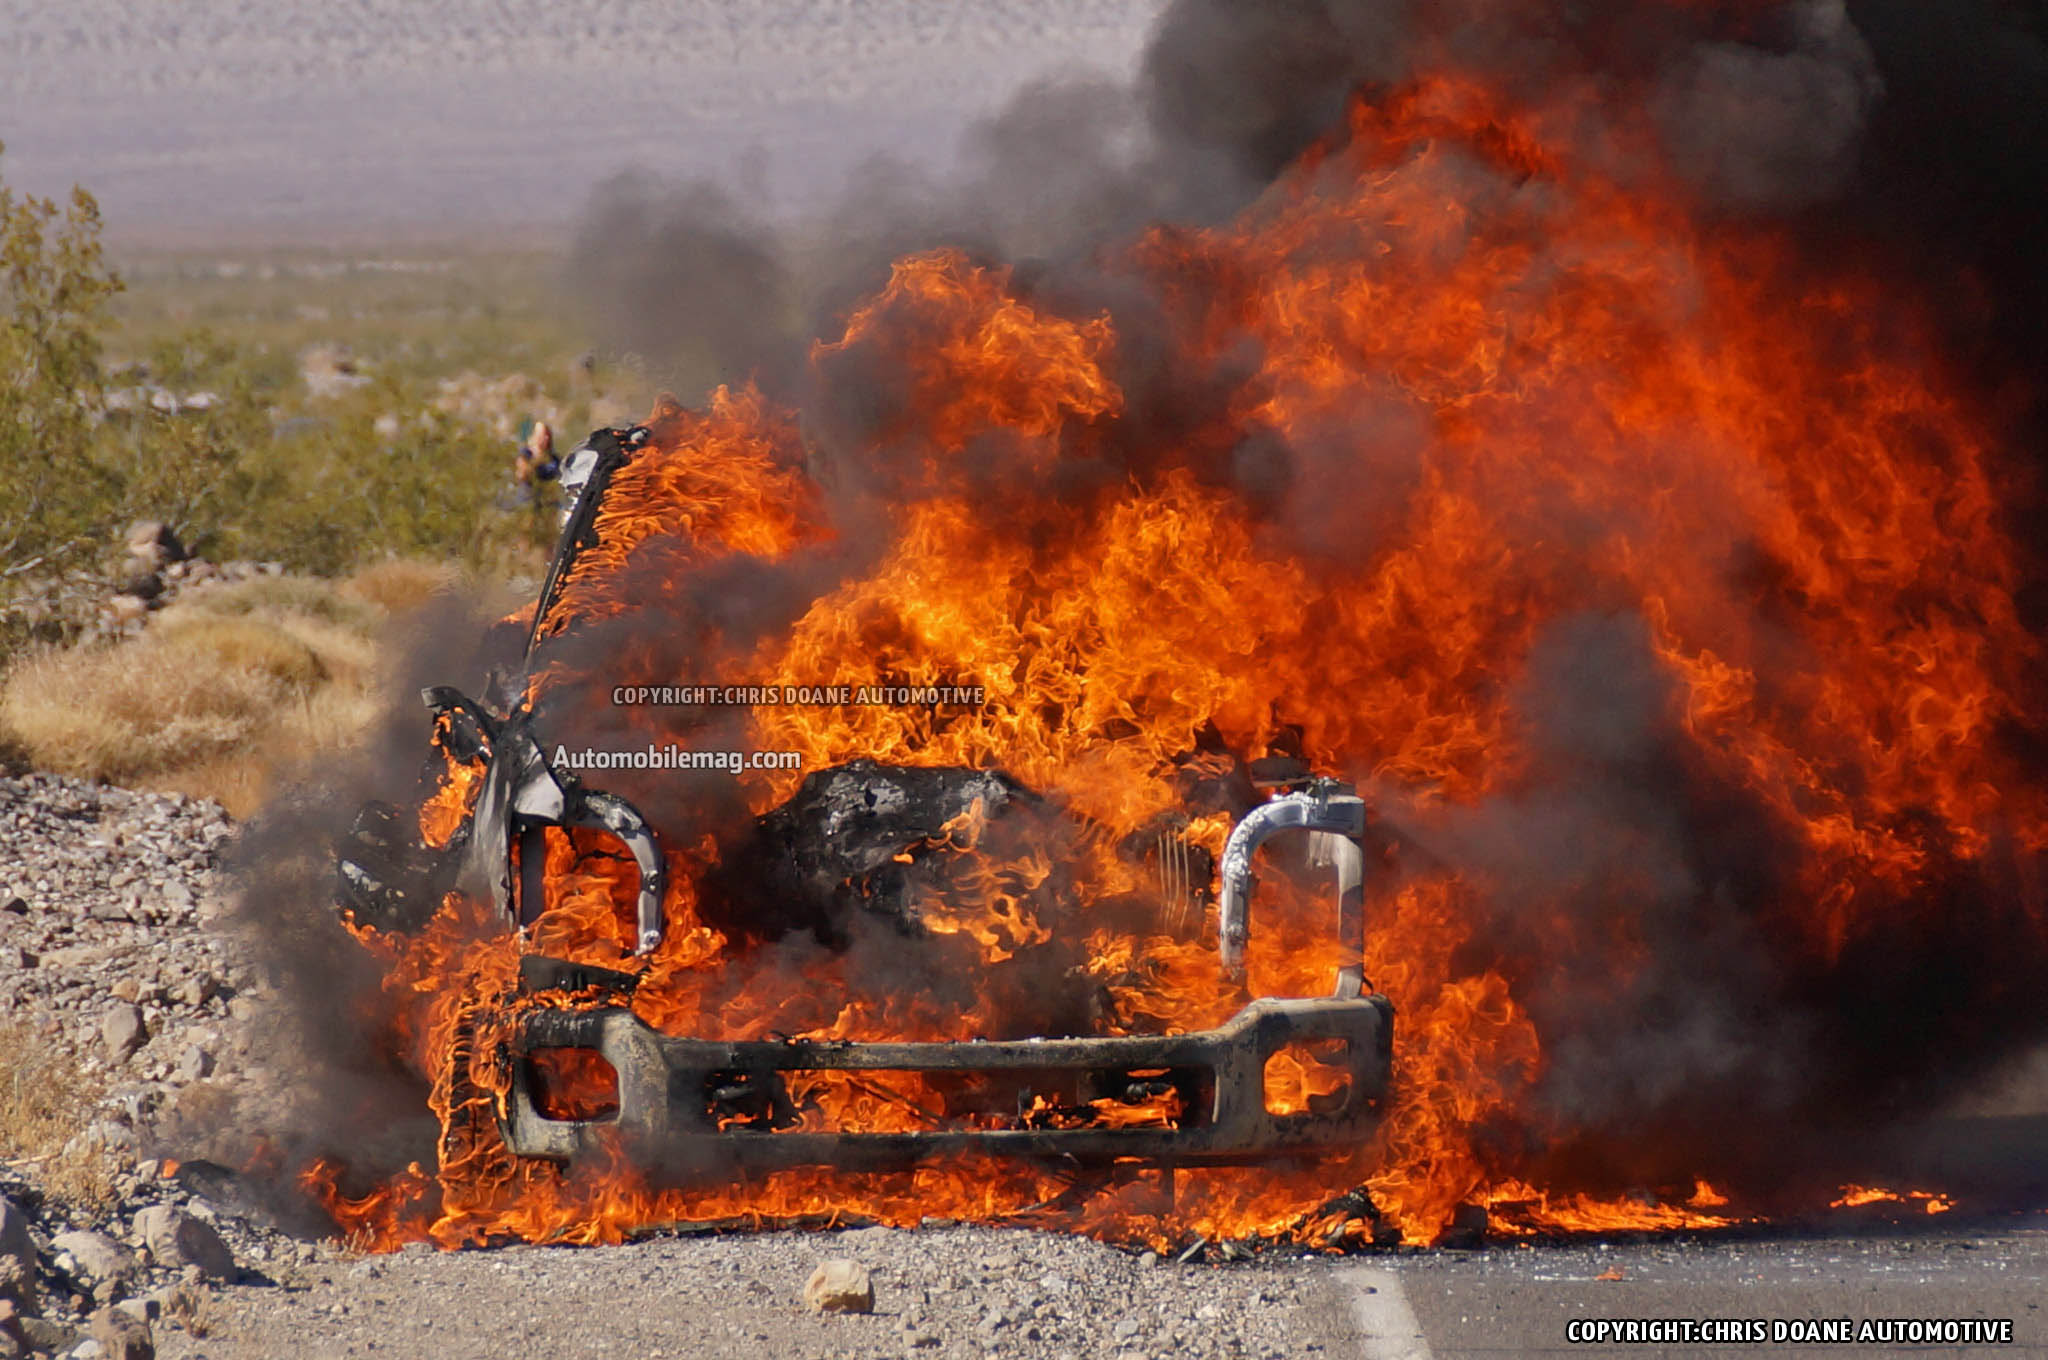 2016 Ford Super Duty >> 2016 Ford F-Series Super Duty Prototype Catches Fire, Burns in Desert